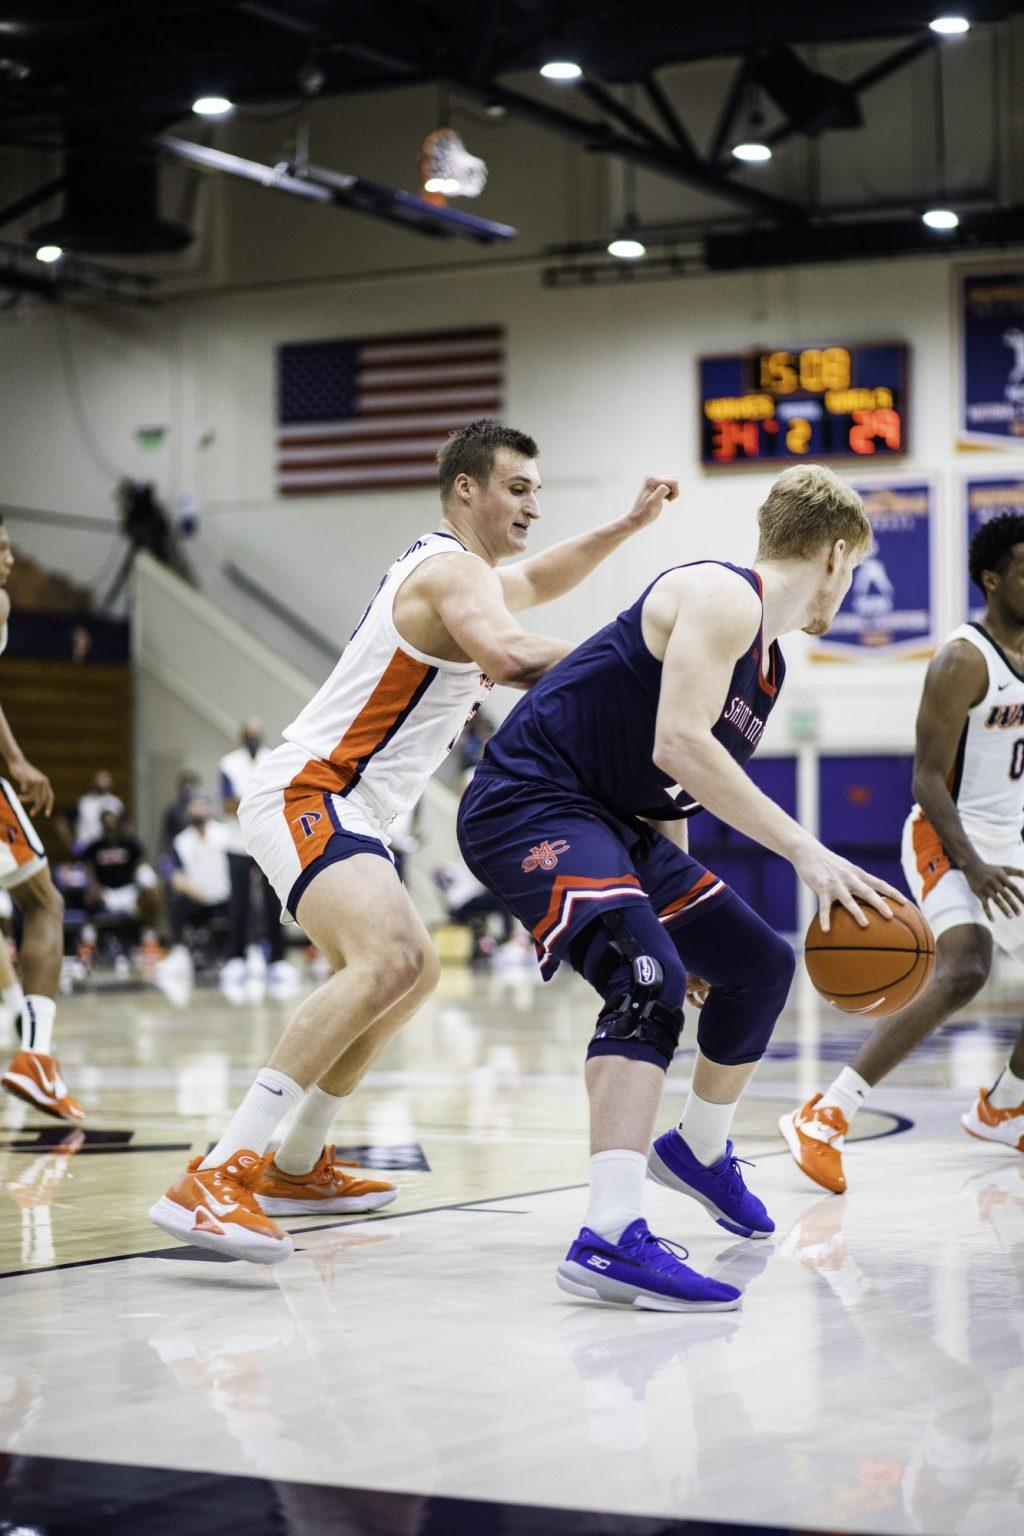 Sophomore forward Jan Zidek plays defense as Saint Mary's junior center Matthias Taas backs him down. Zidek was effective off the bench with 11 points and 11 rebounds.